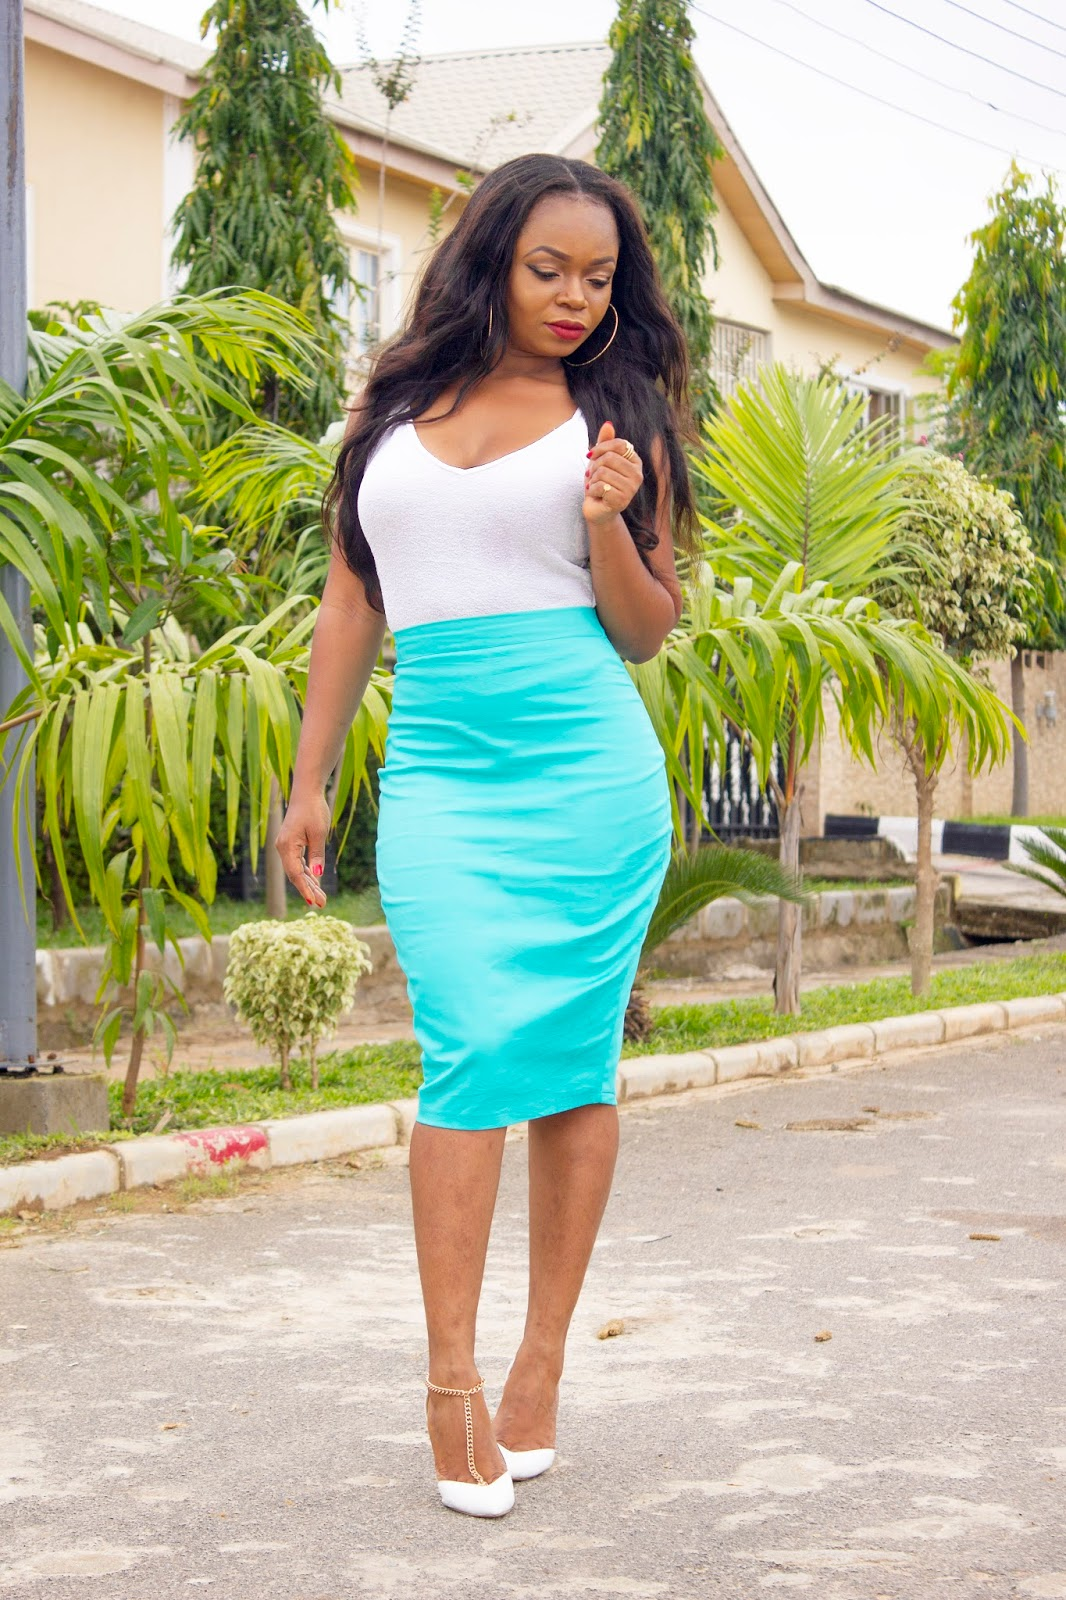 Teal colored pencil skirt with white top